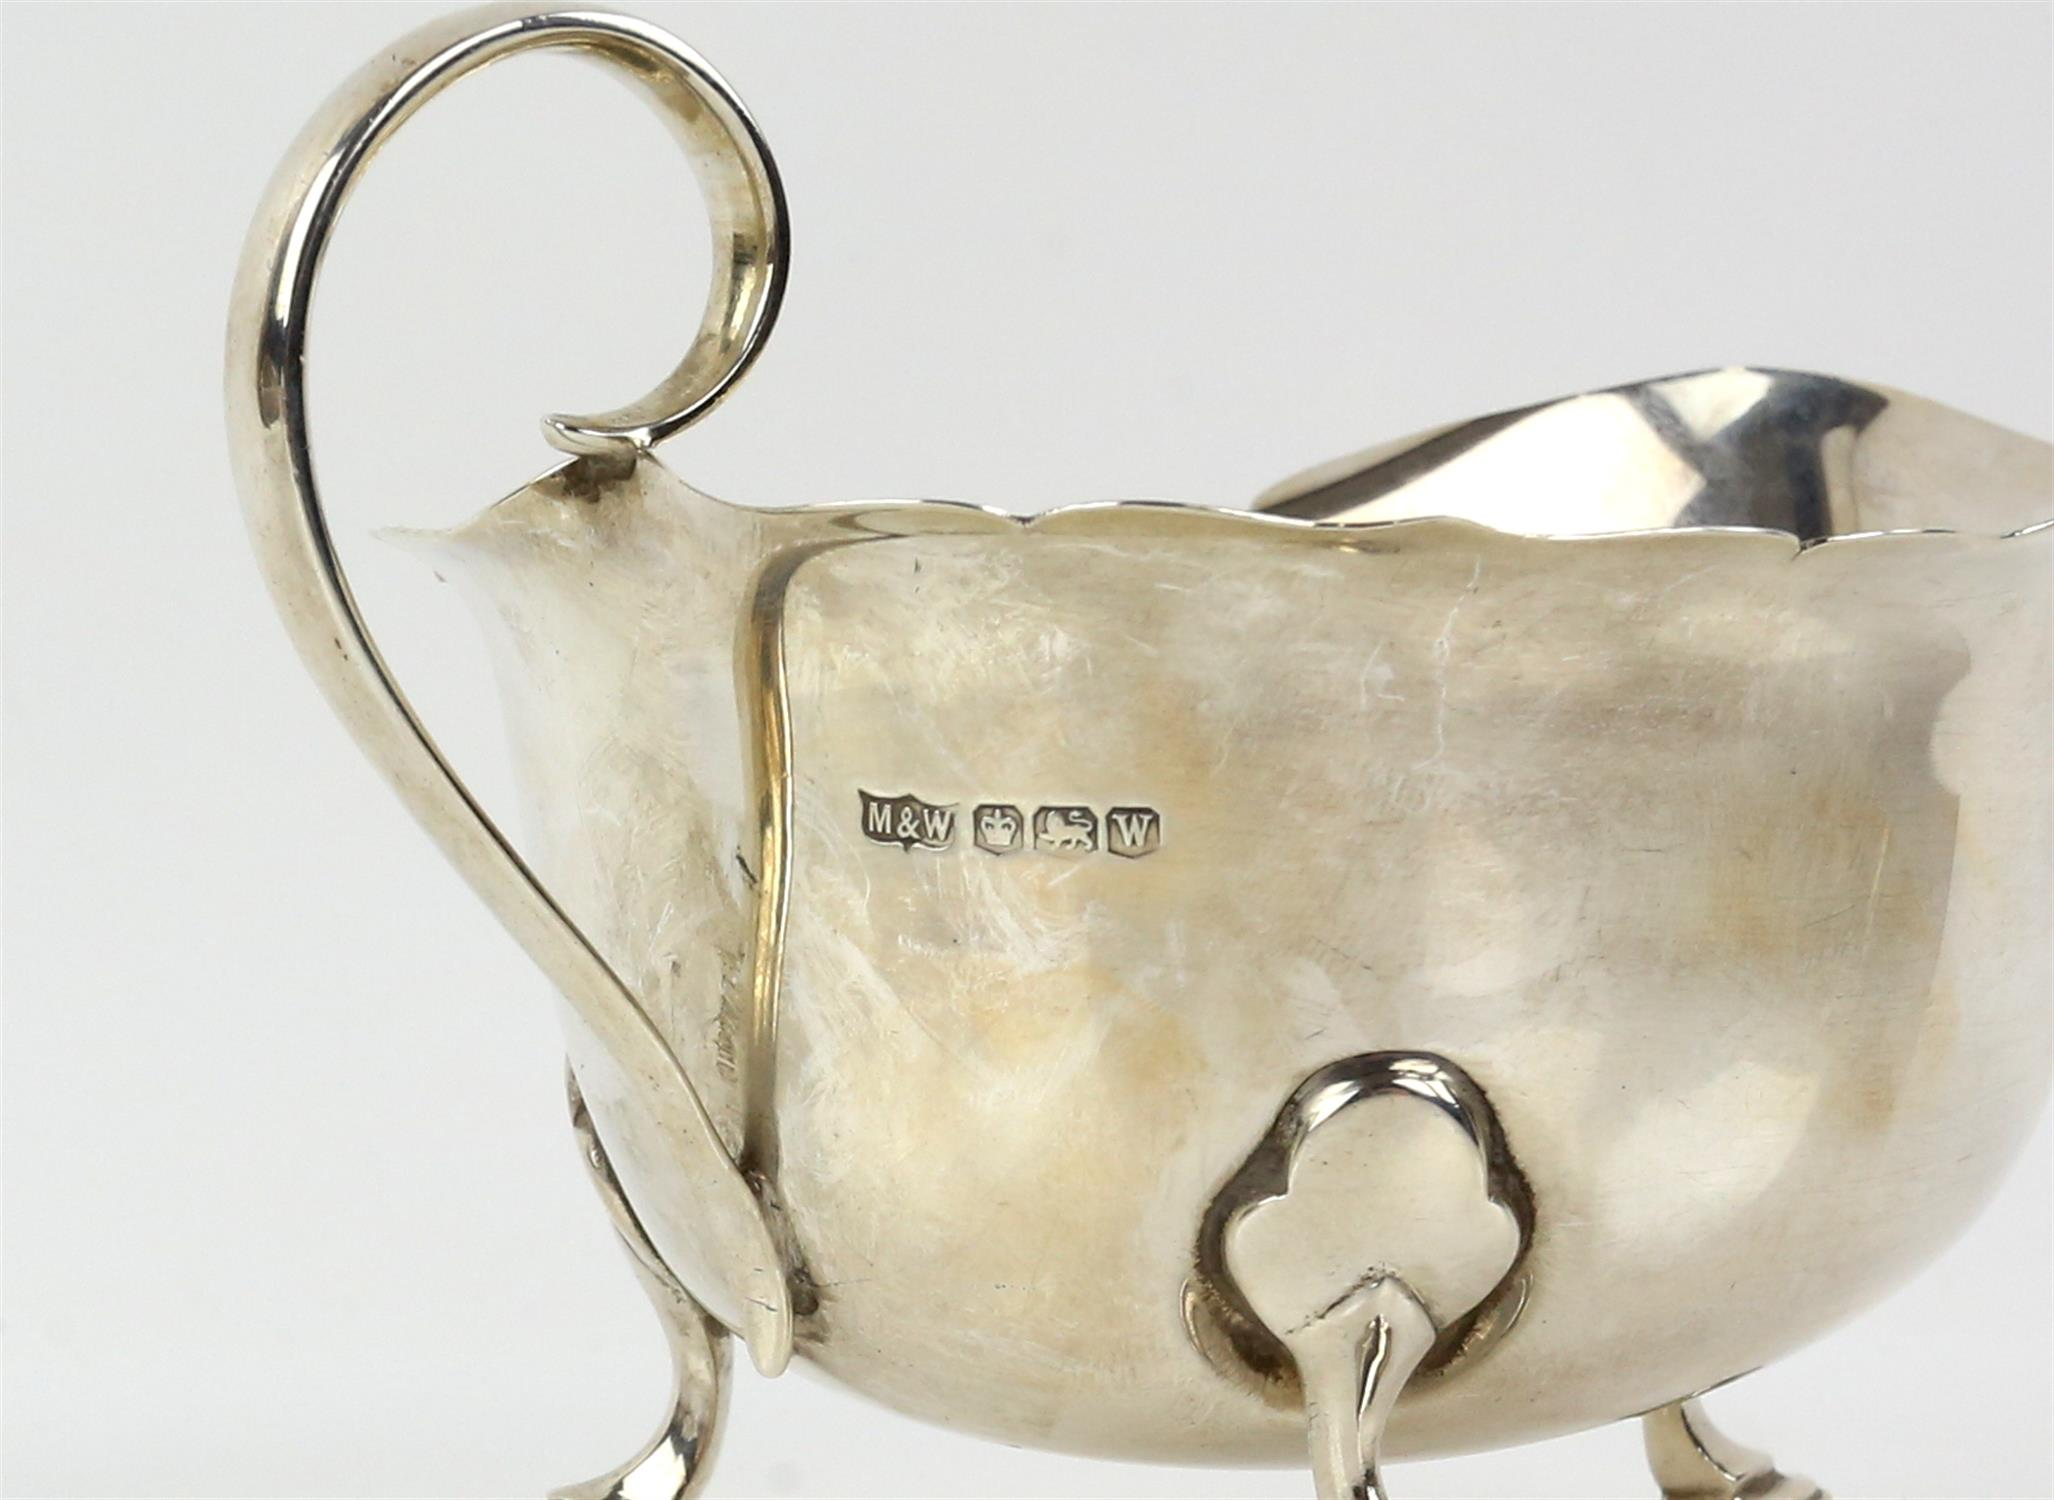 Pair of George VI silver sauceboats with serpentine rims on hoof feet, by Mappin & Webb, Sheffield, - Image 6 of 6